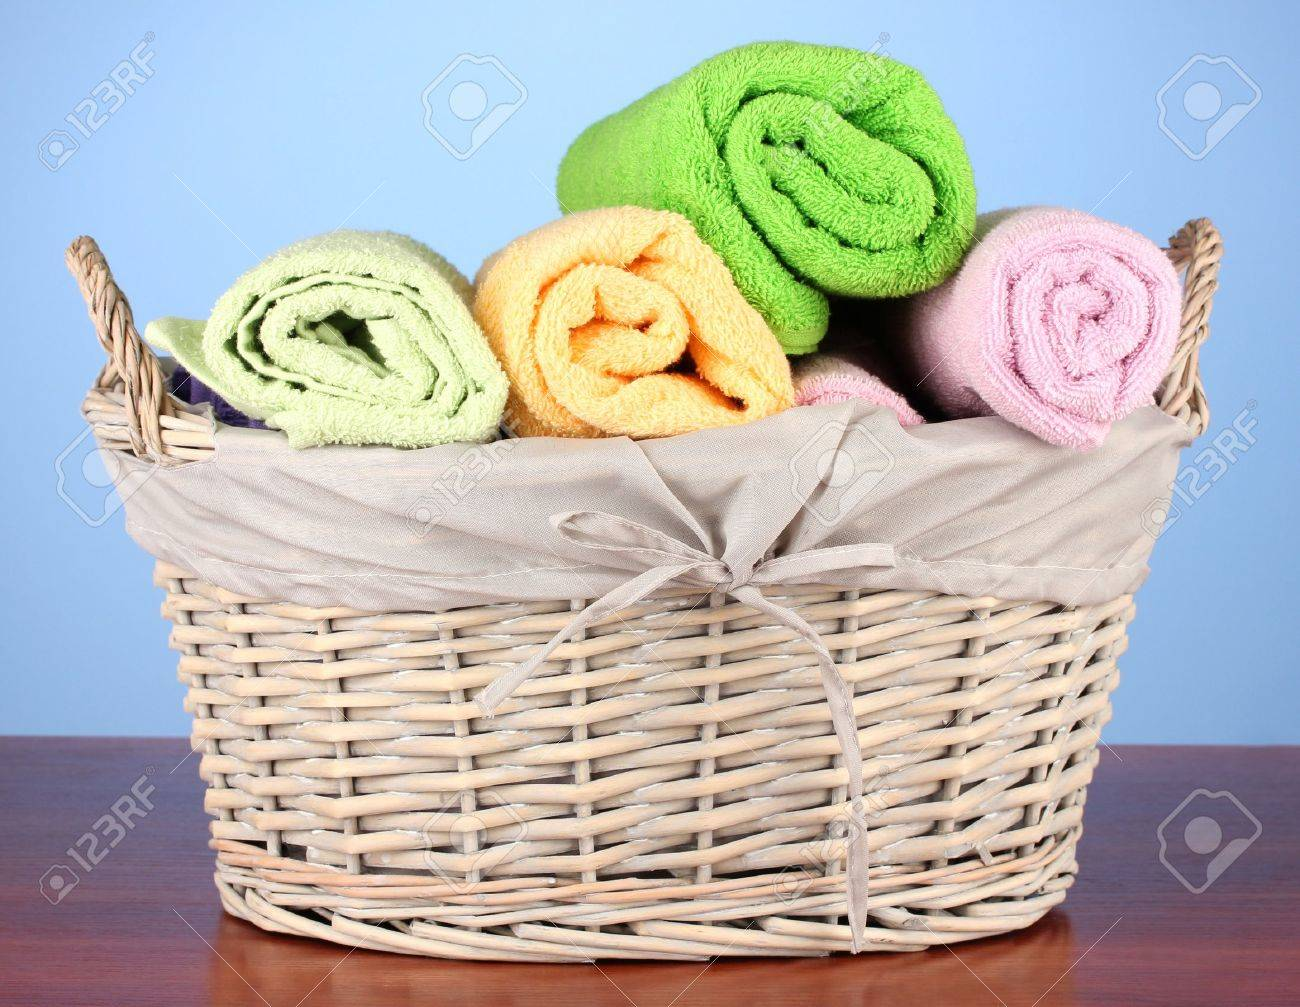 Colorful towels in basket on color background Stock Photo - 20504605